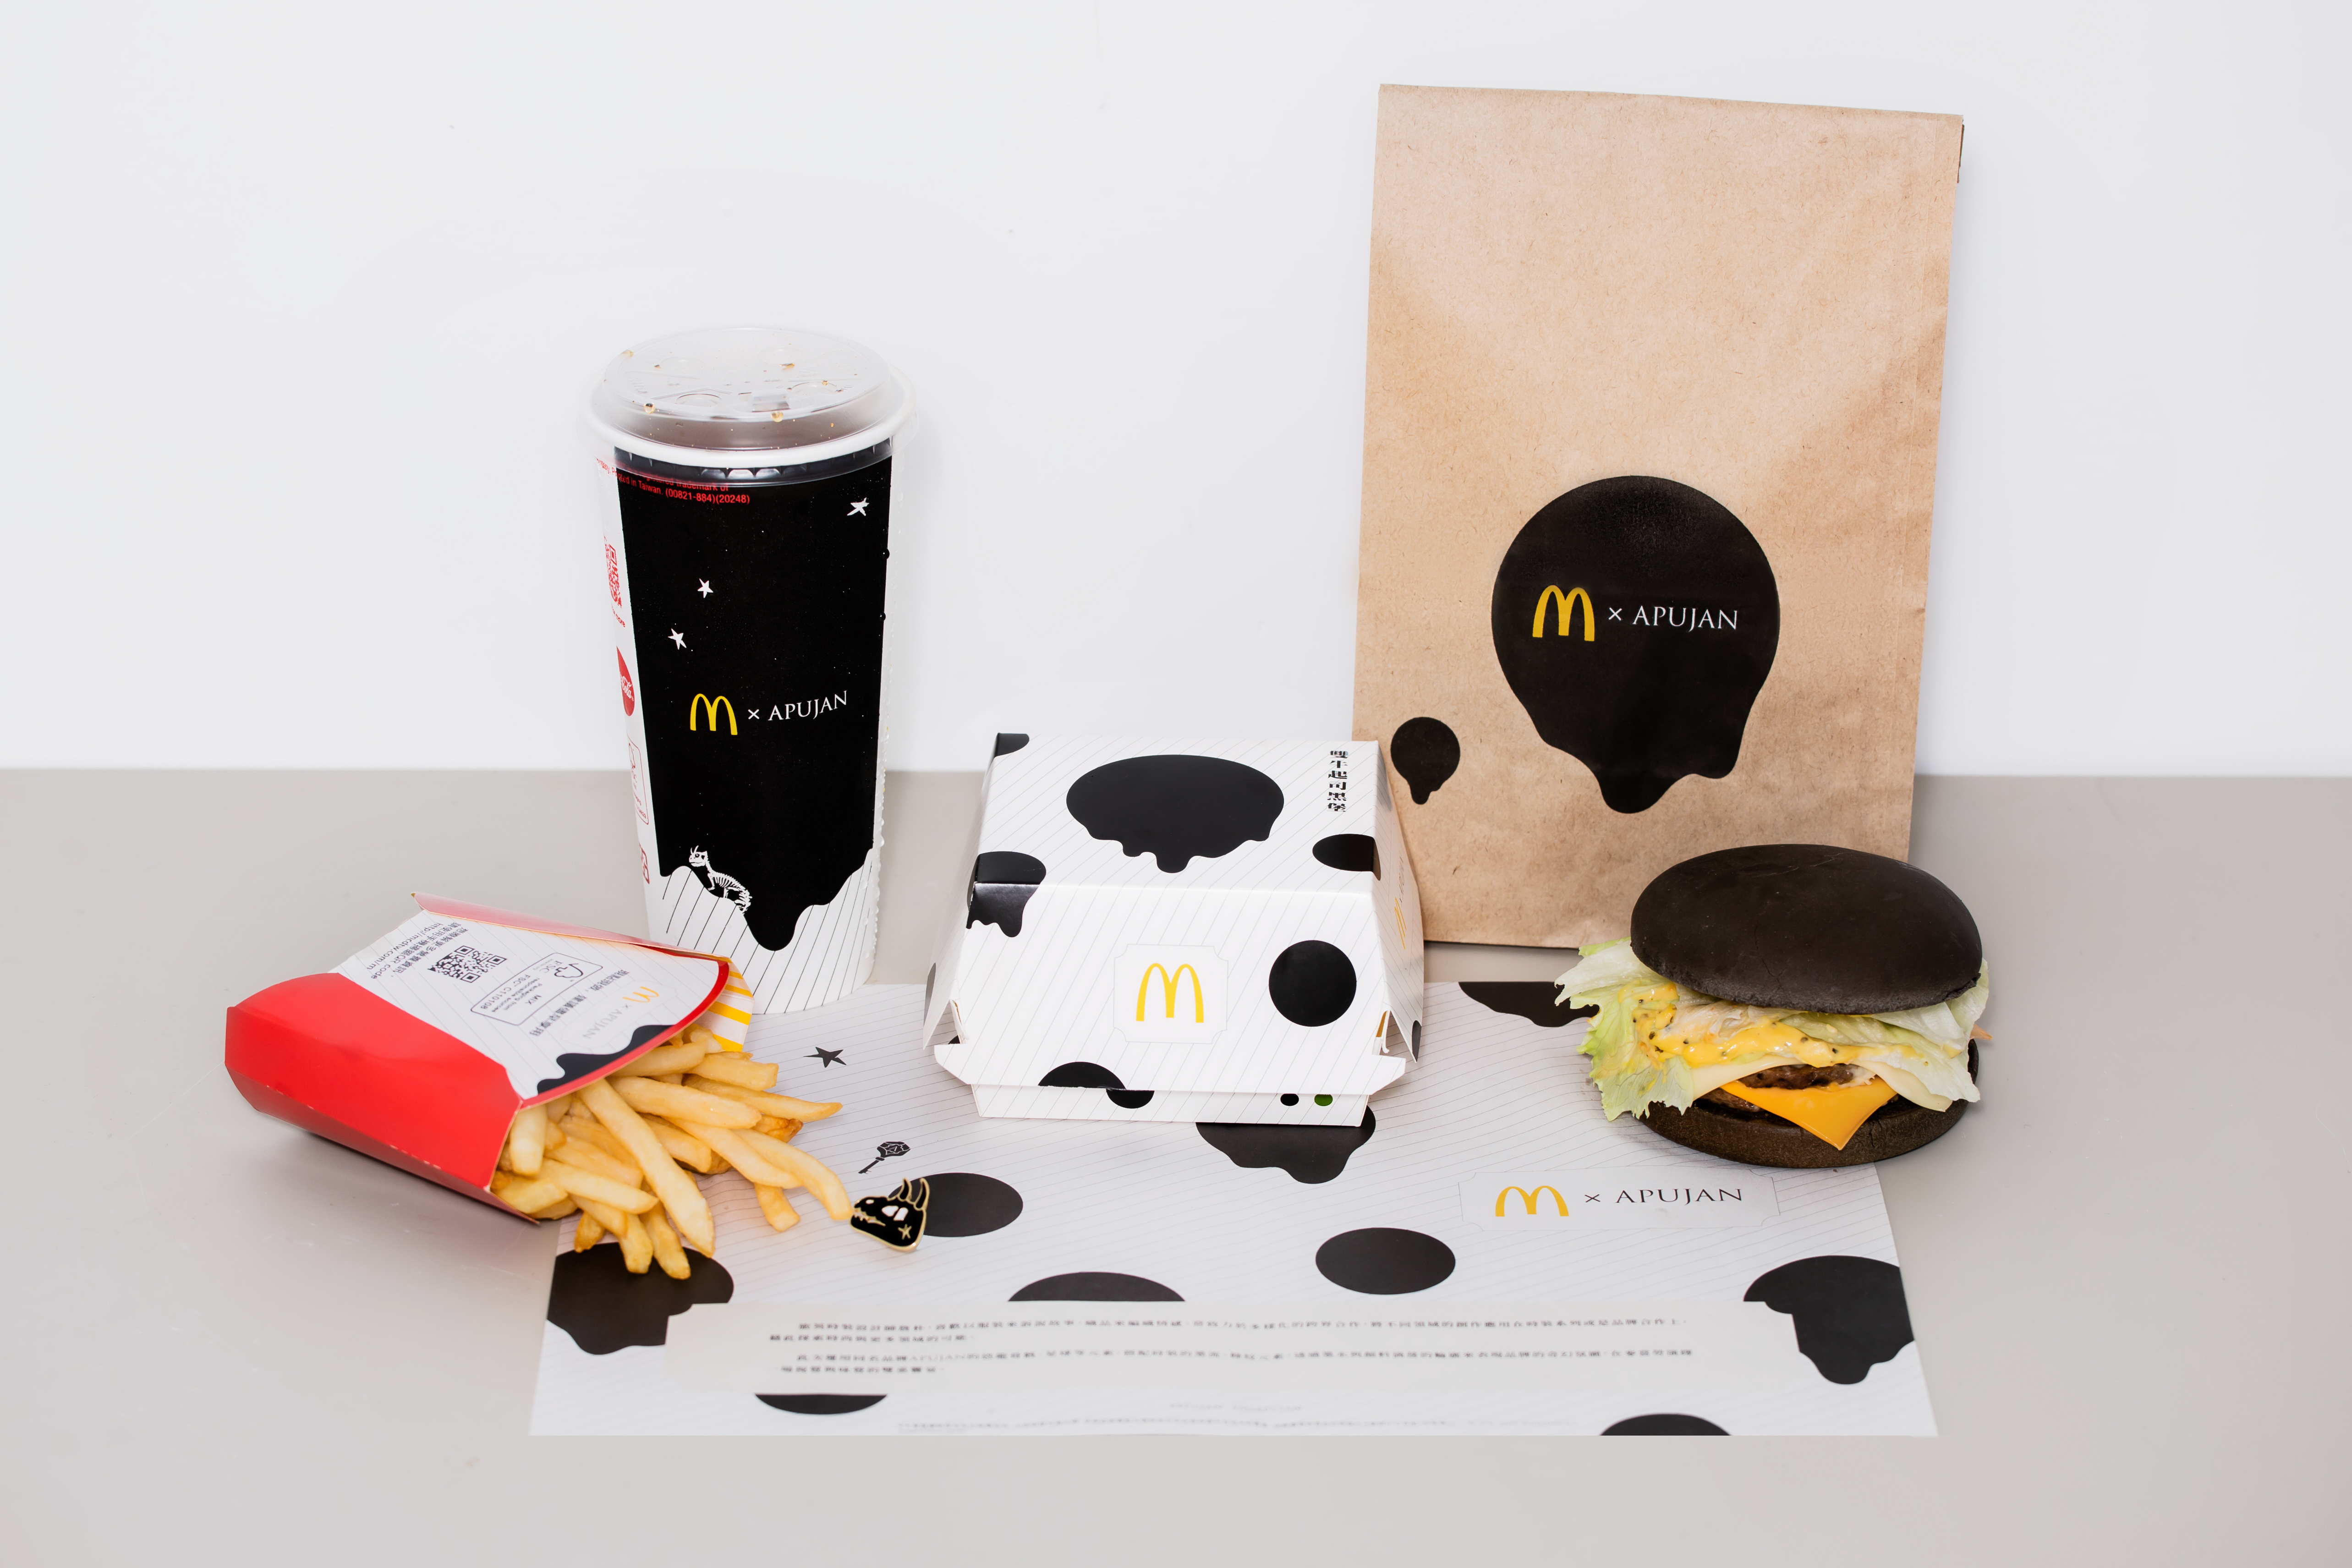 APUJAN x McDonald's new collection